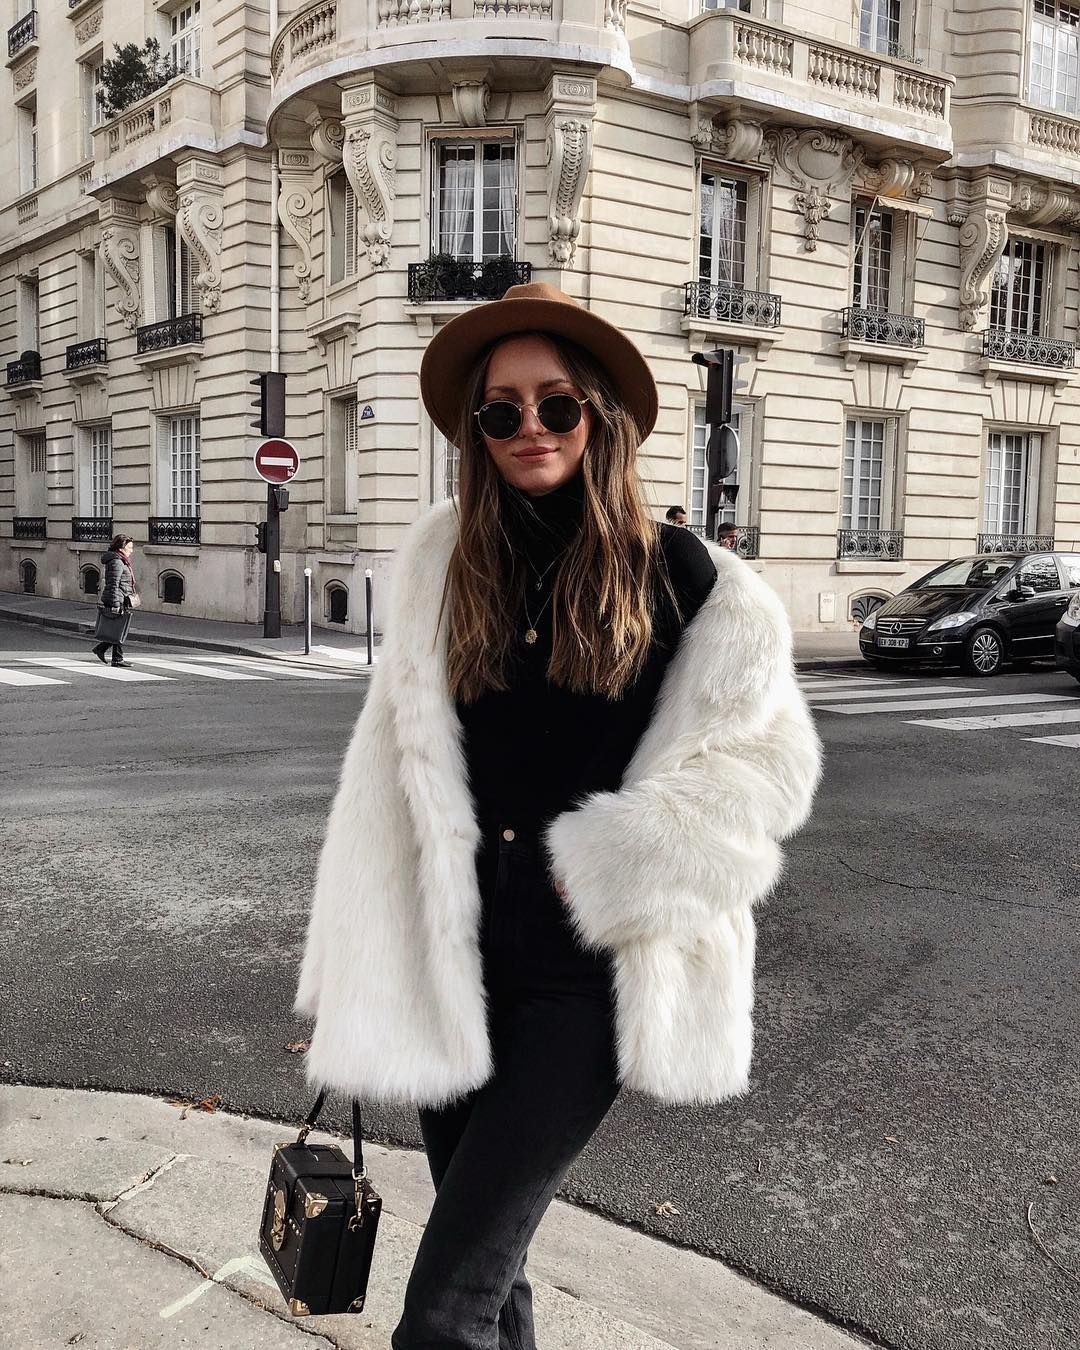 Cutest White Faux Fur Jacket Over All Black Casual Outfit Fur Jacket Outfit Coat Outfit Casual Fluffy Coat Outfit [ 1350 x 1080 Pixel ]